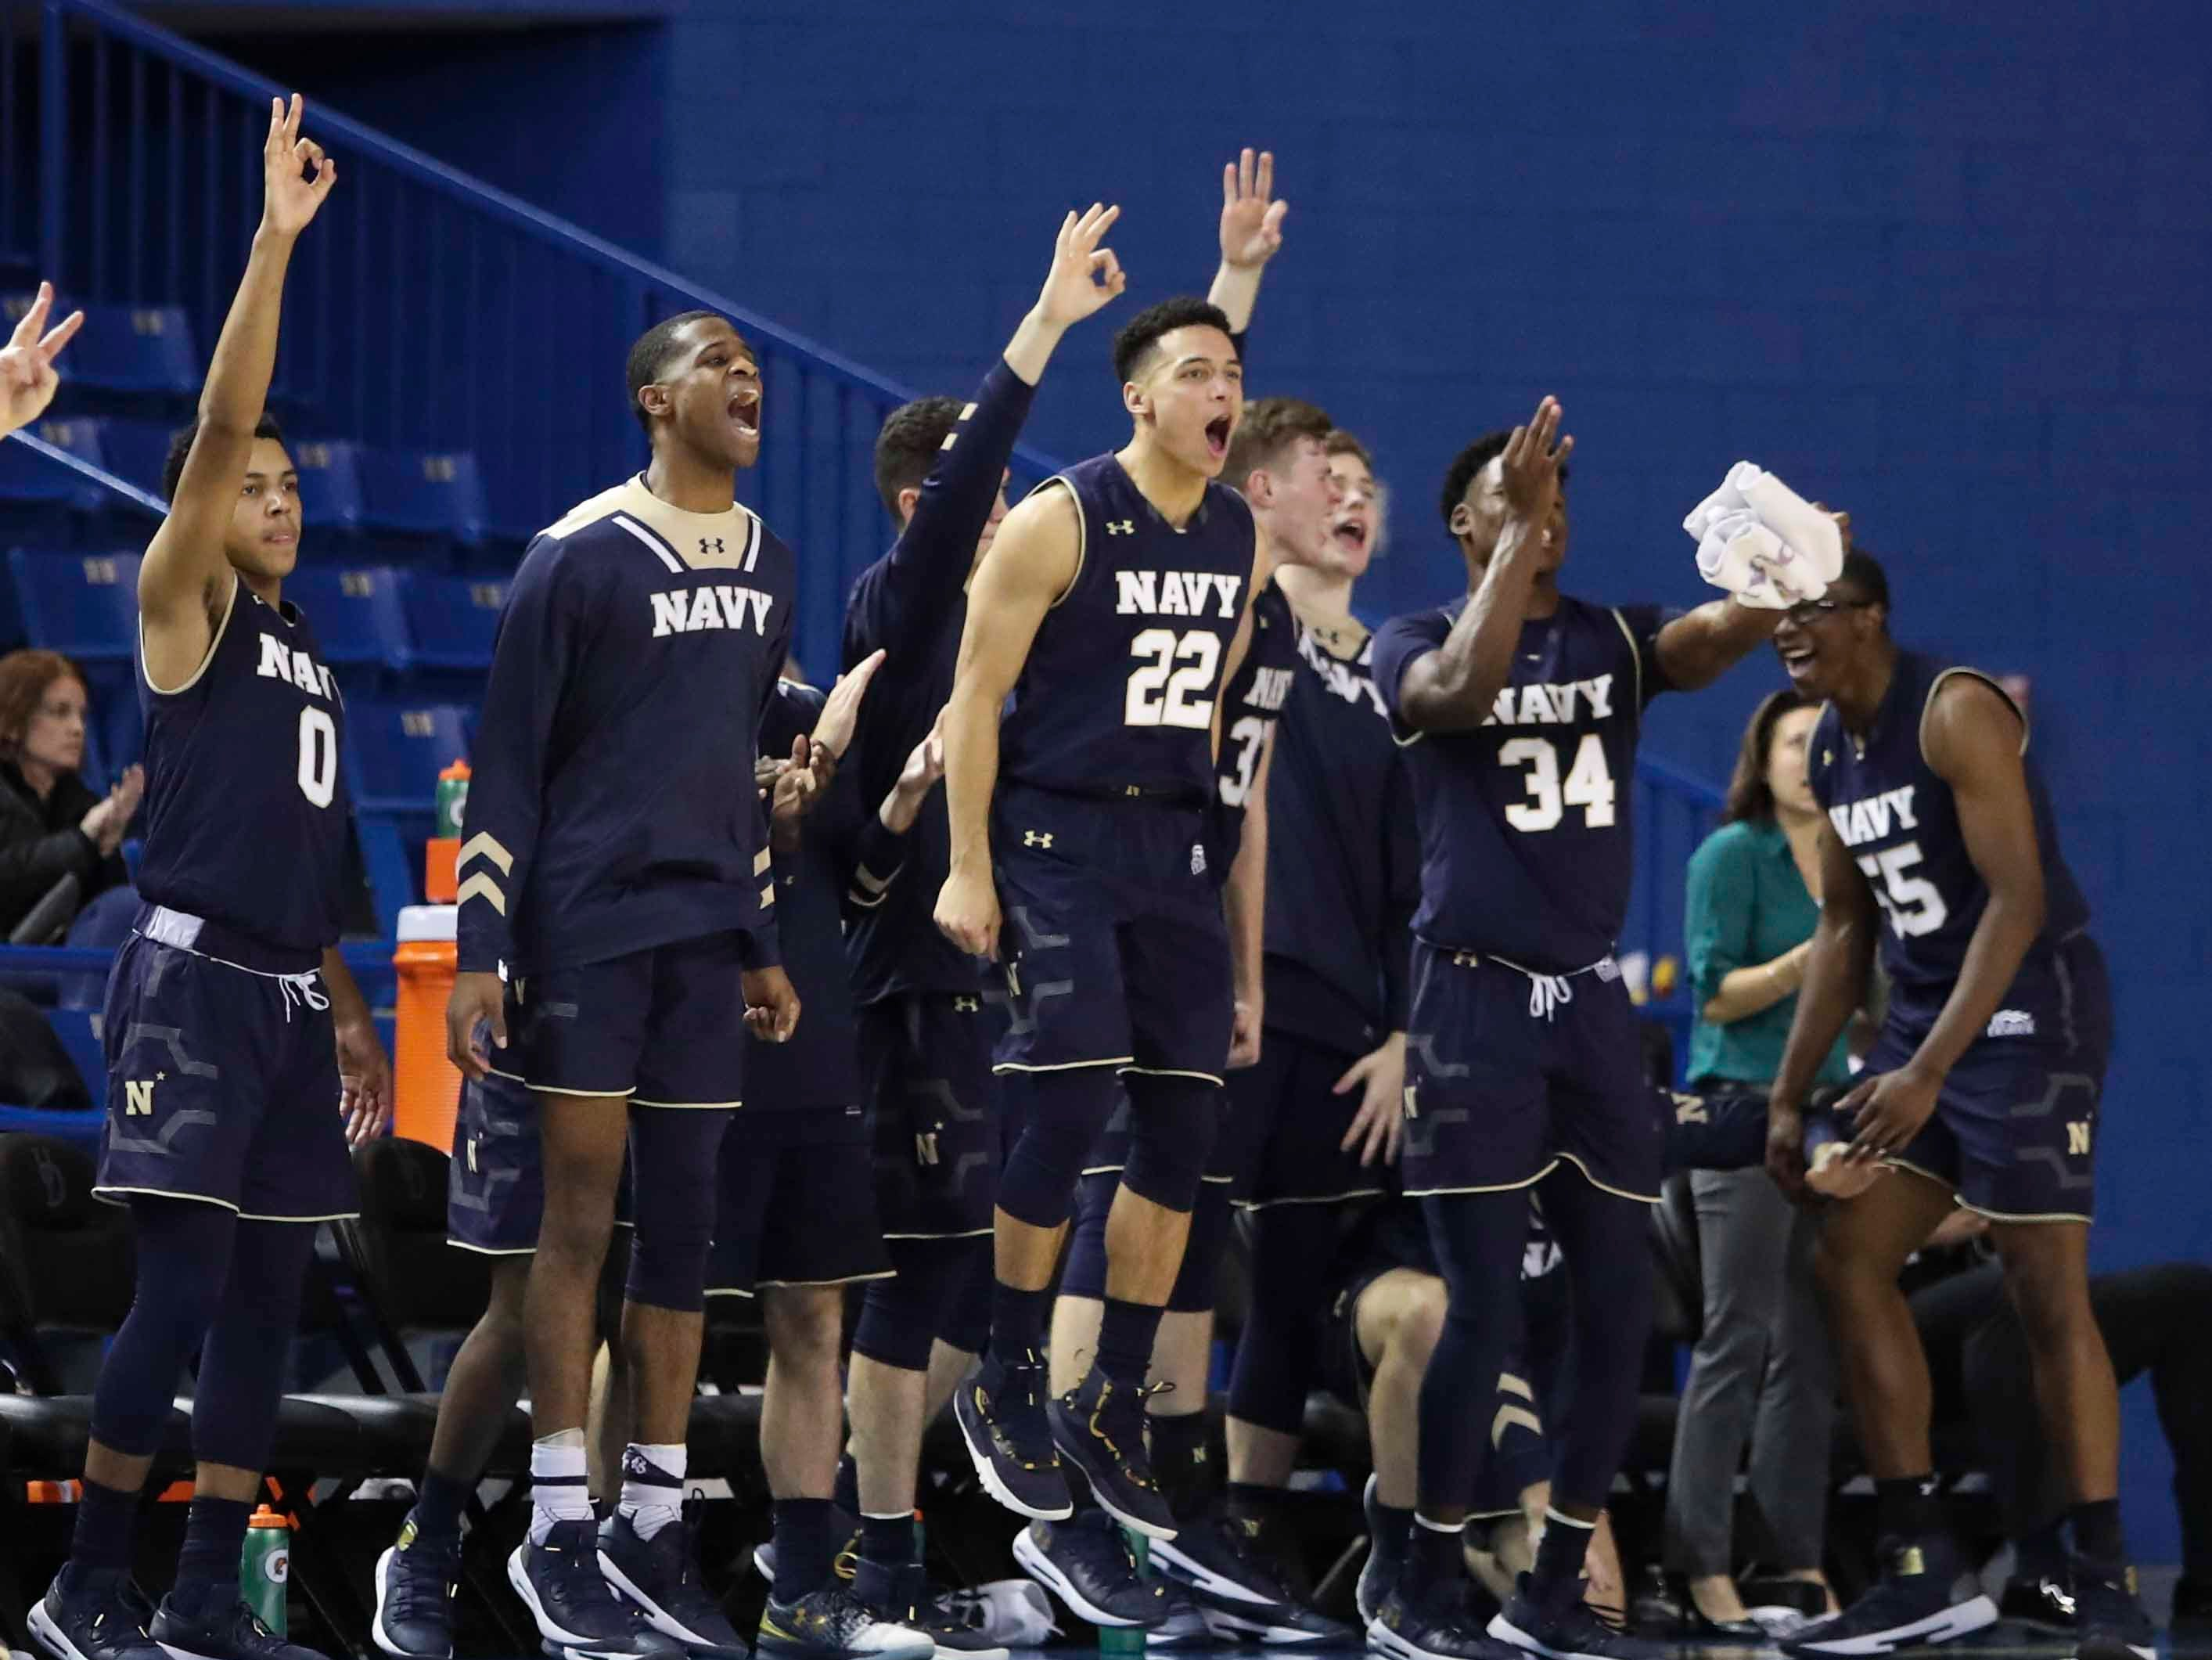 The Navy bench reacts as the Midshipmen turn on the shooting in the second half of Delaware's 80-65 loss at the Bob Carpenter Center Wednesday.